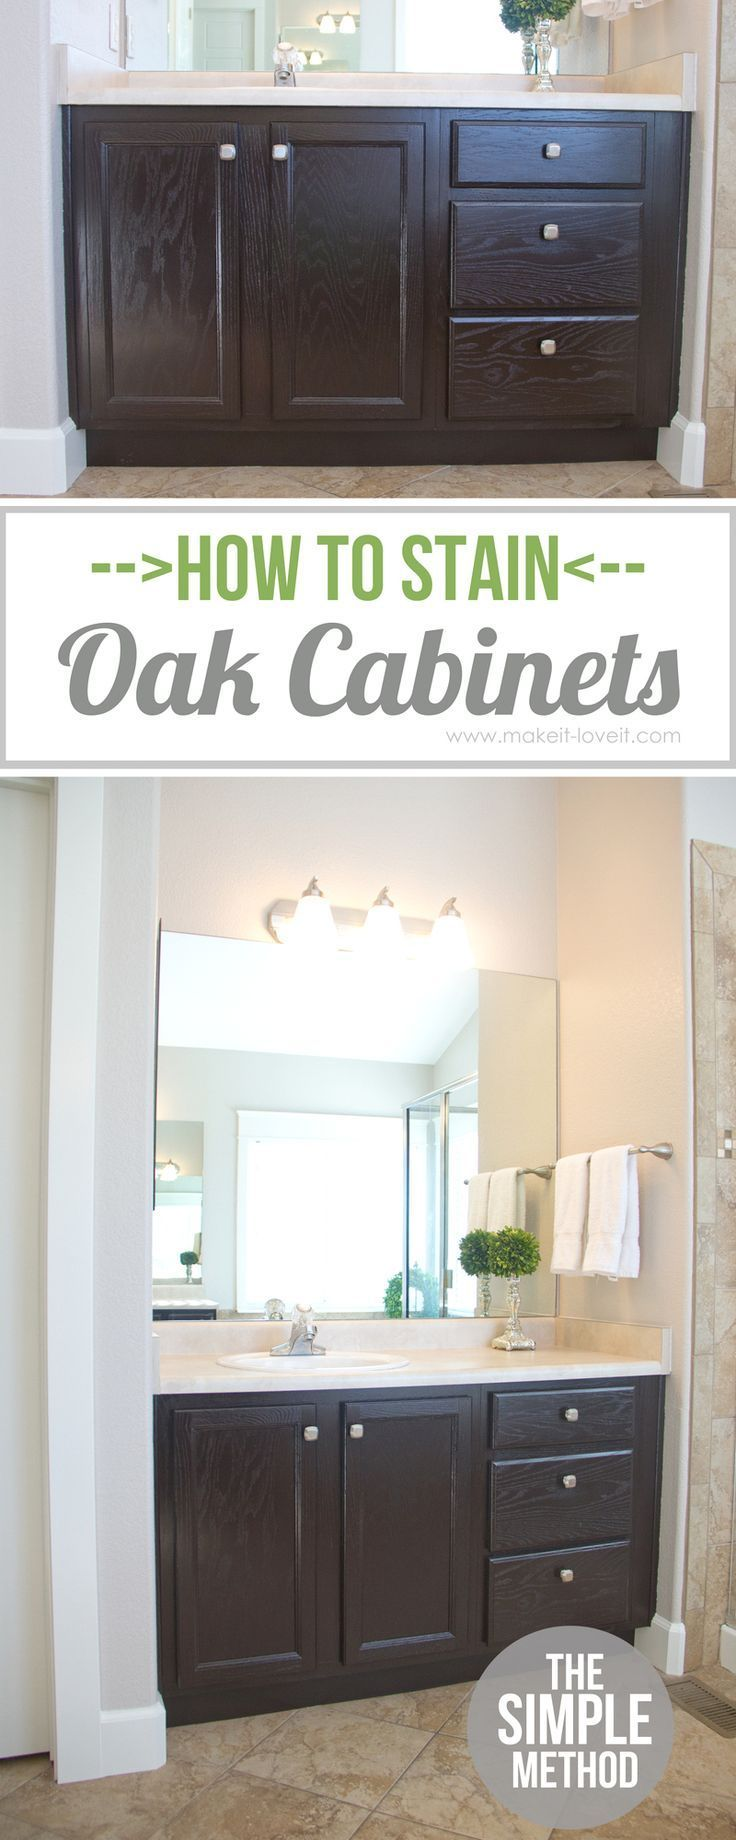 Cabinet Stain Ideas Onstained Kitchen